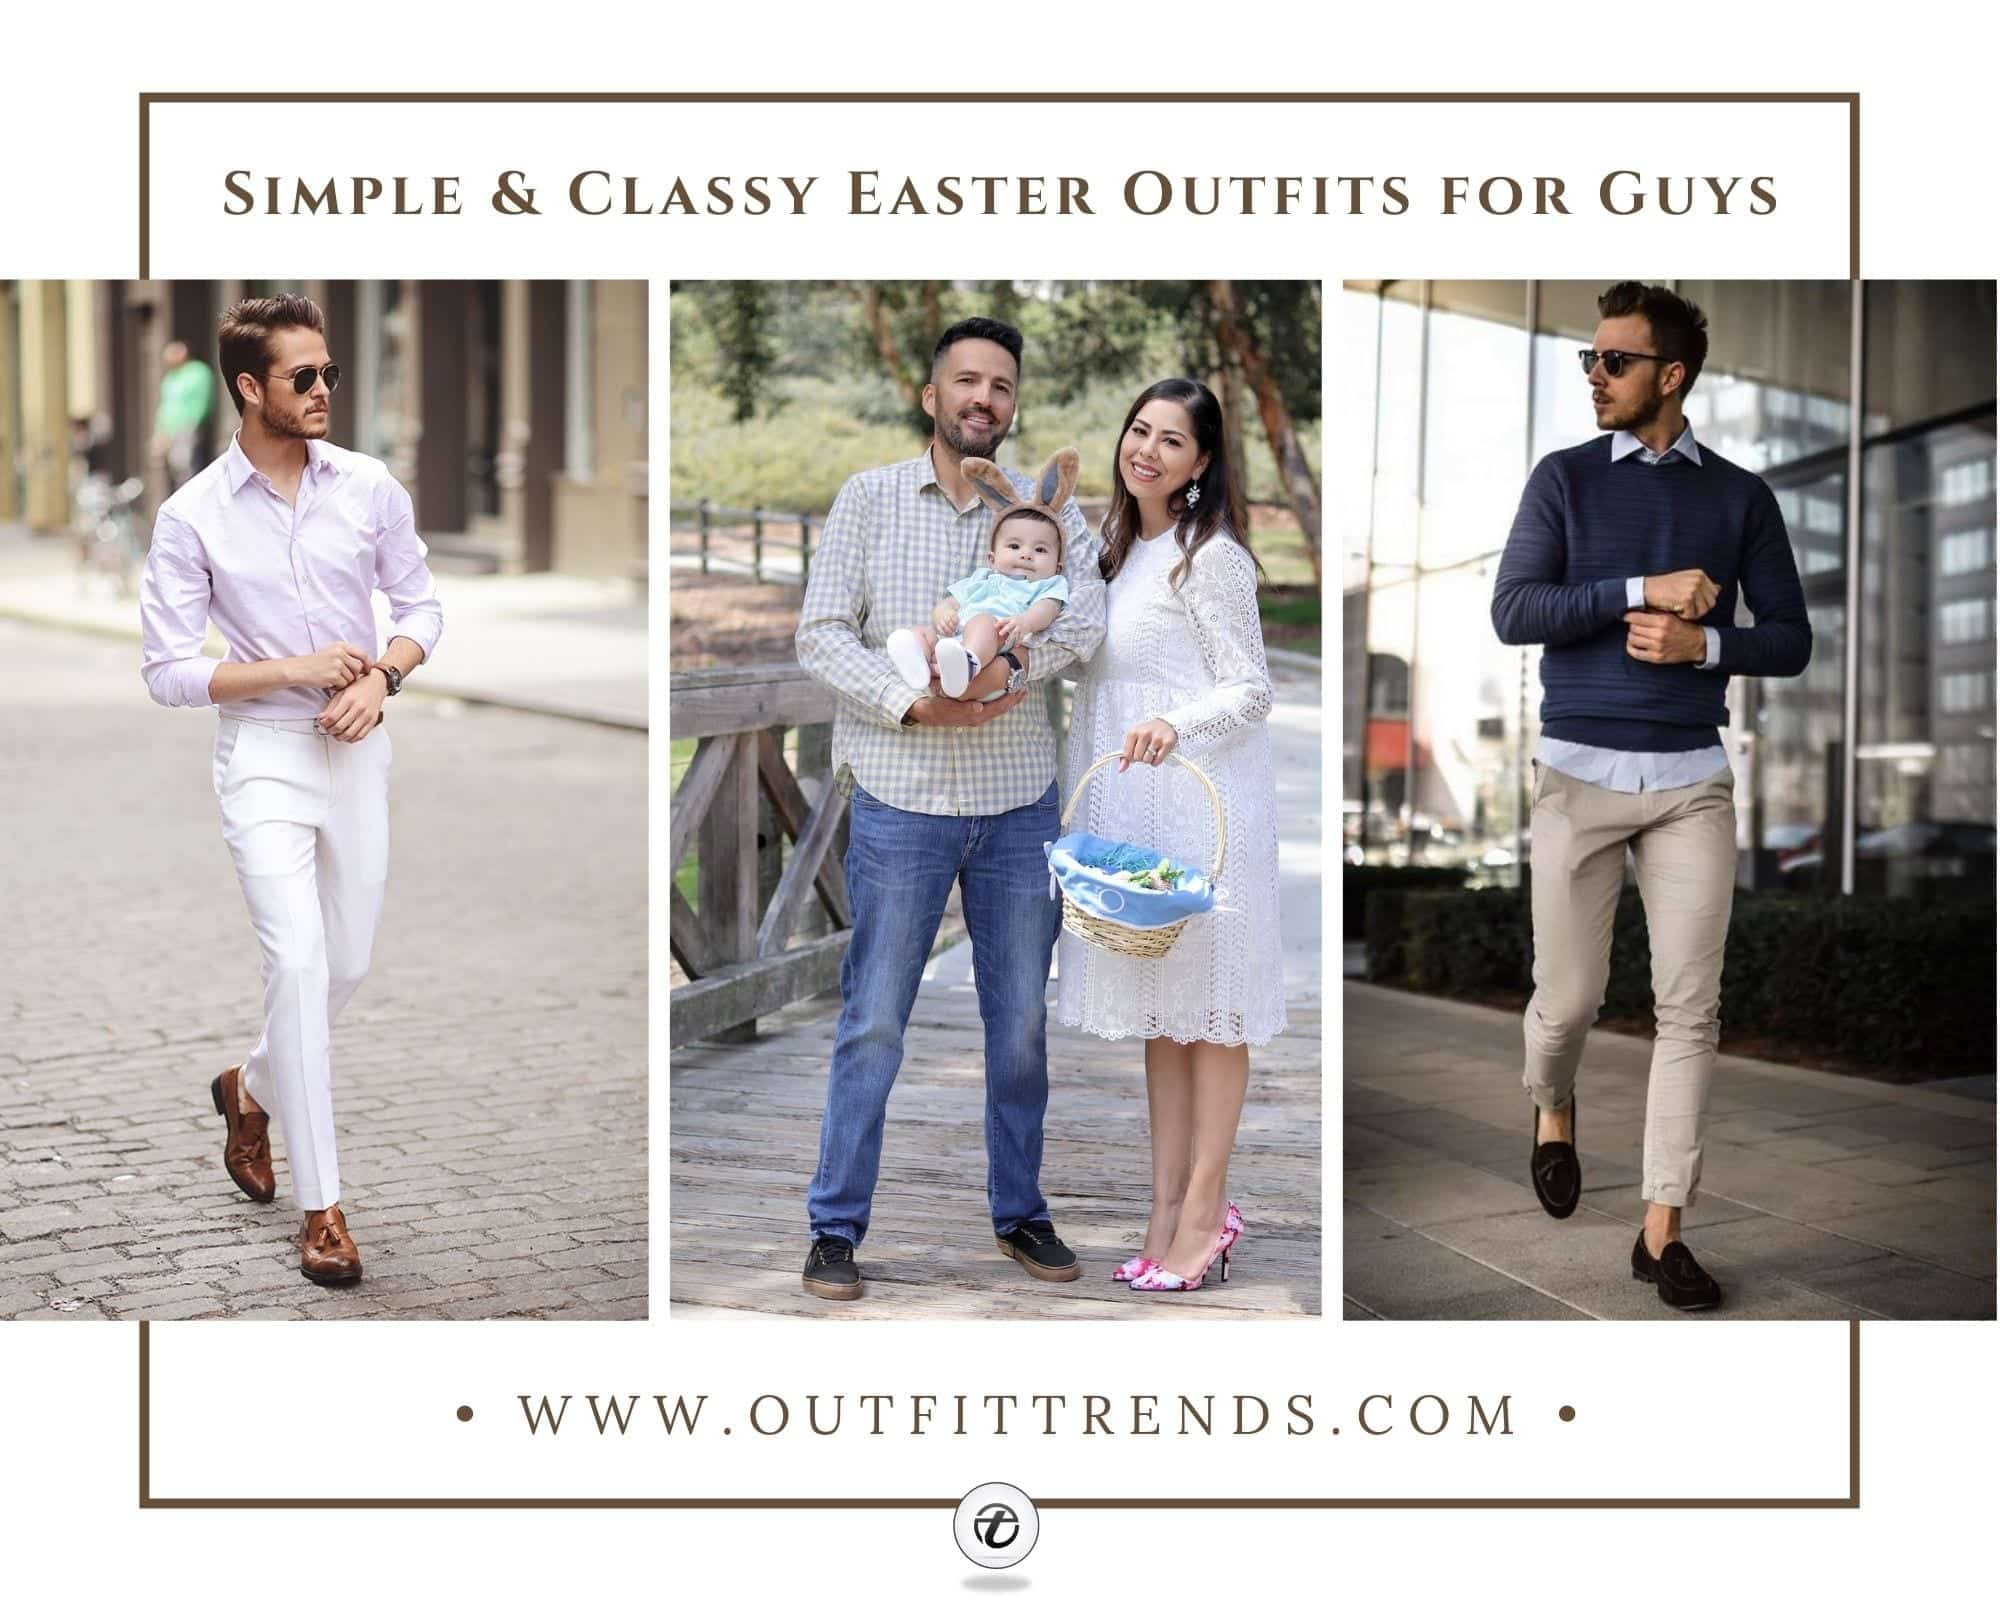 20 Fashionable Easter Outfit Ideas for Men To Wear In 2020